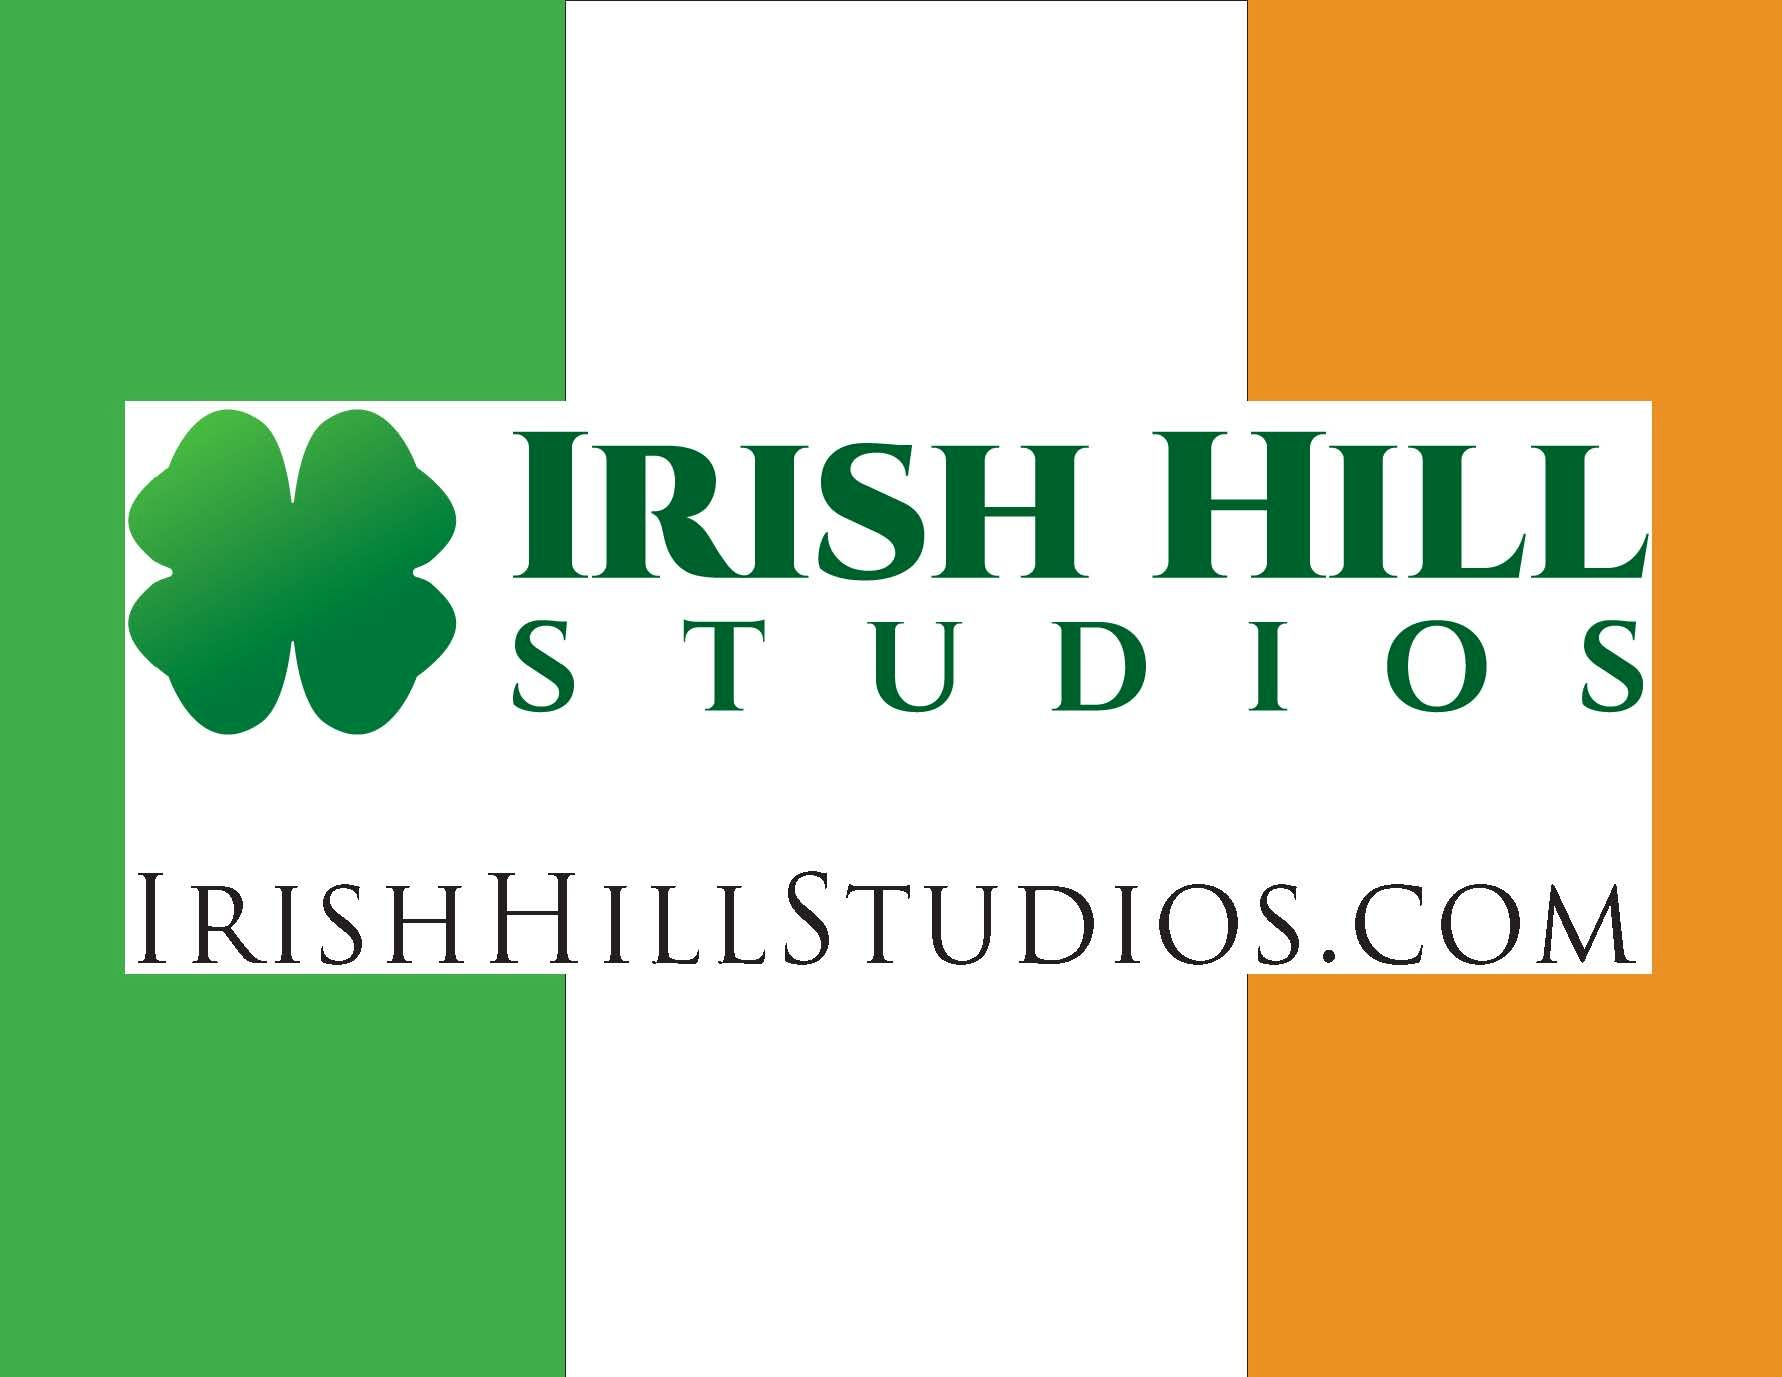 Irish Hill Studios